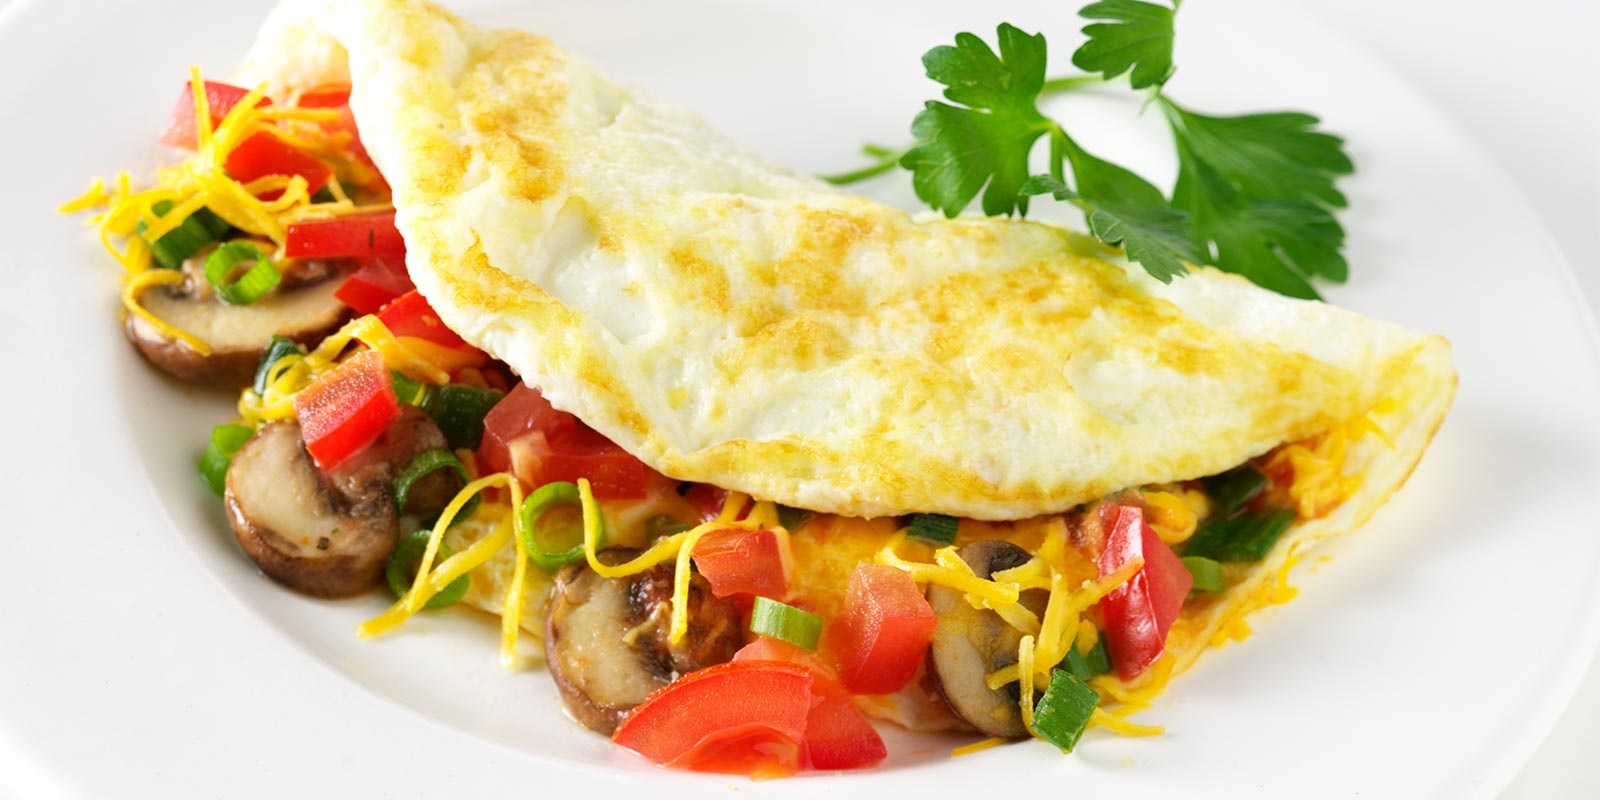 Egg white omelette folded over sauteed mushrooms, tomatoes and green onions with shredded cheese and a sprig of cilantro for garnish.